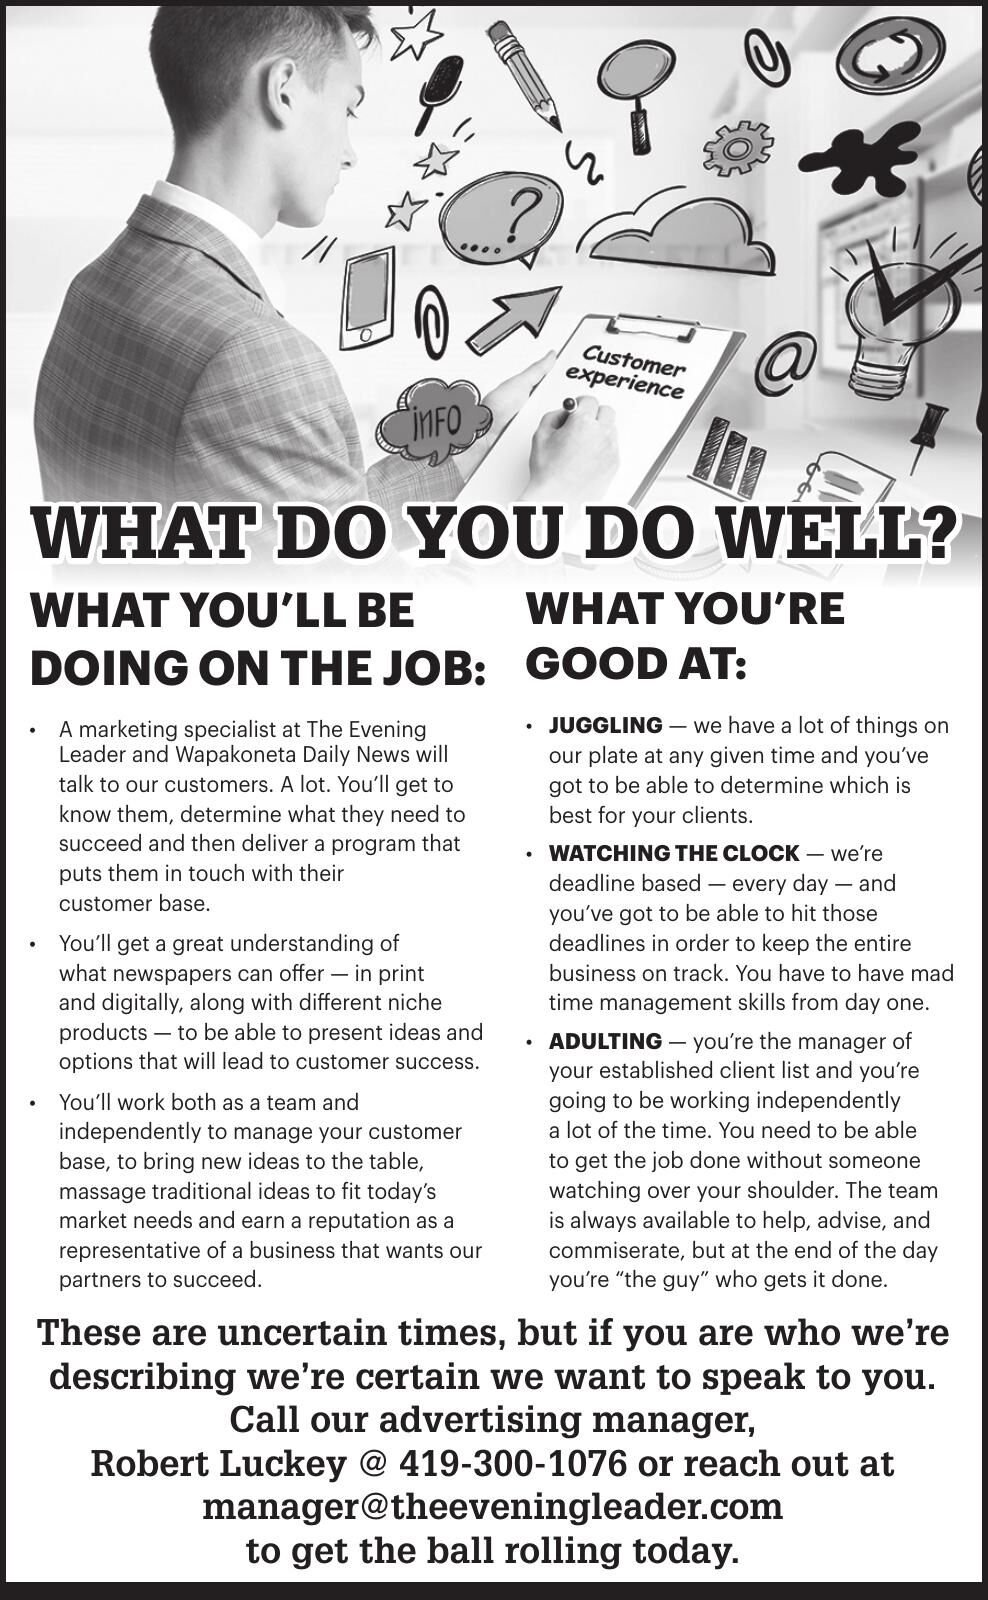 WHAT DO YOU DO WELL?